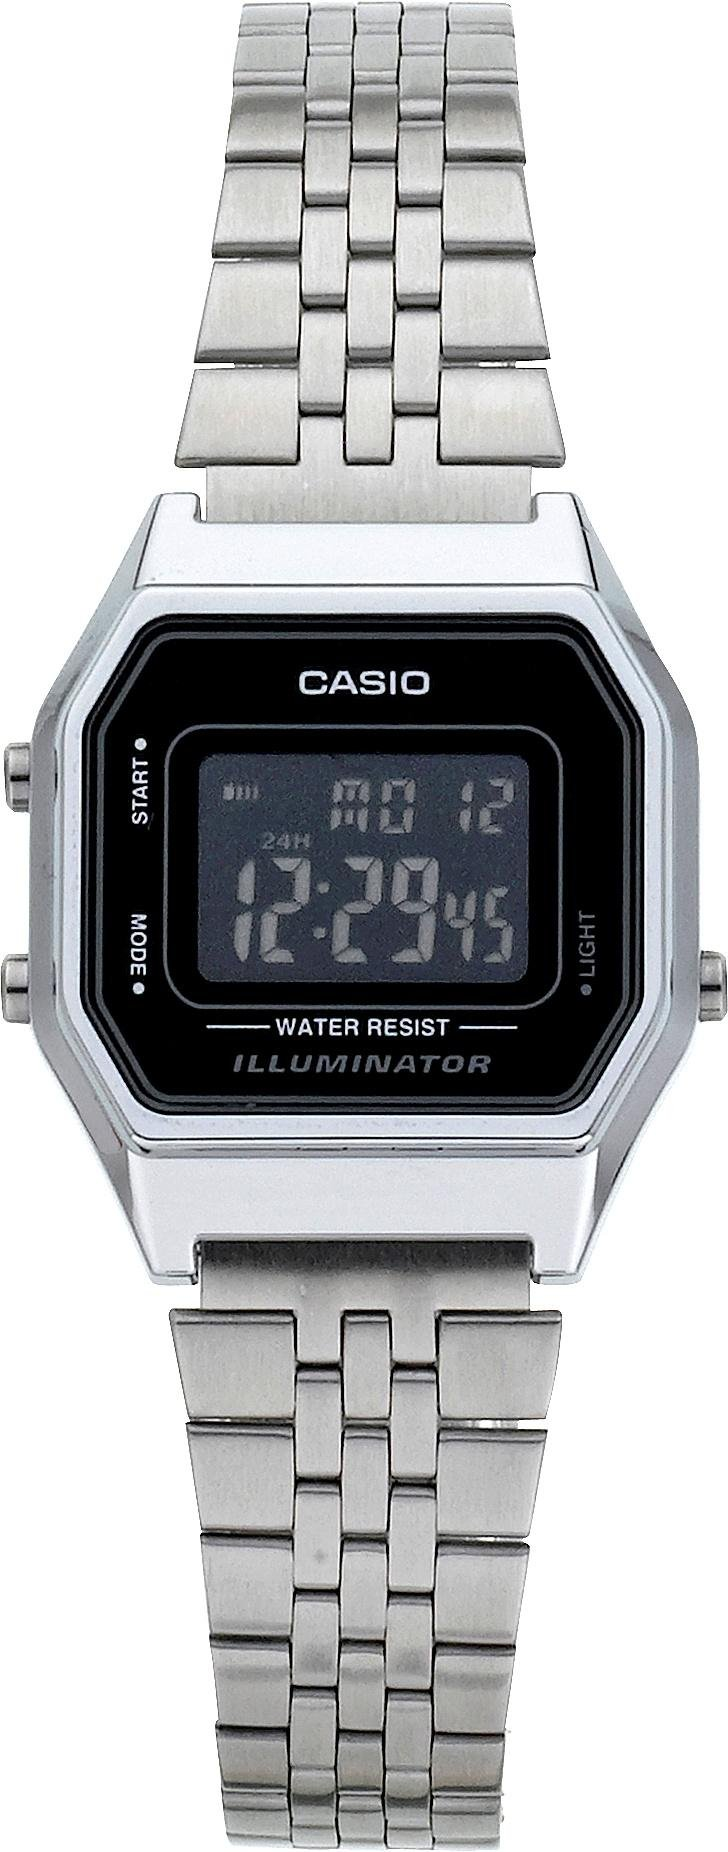 'Casio - Silver Tone Black Dial Digital - Watch